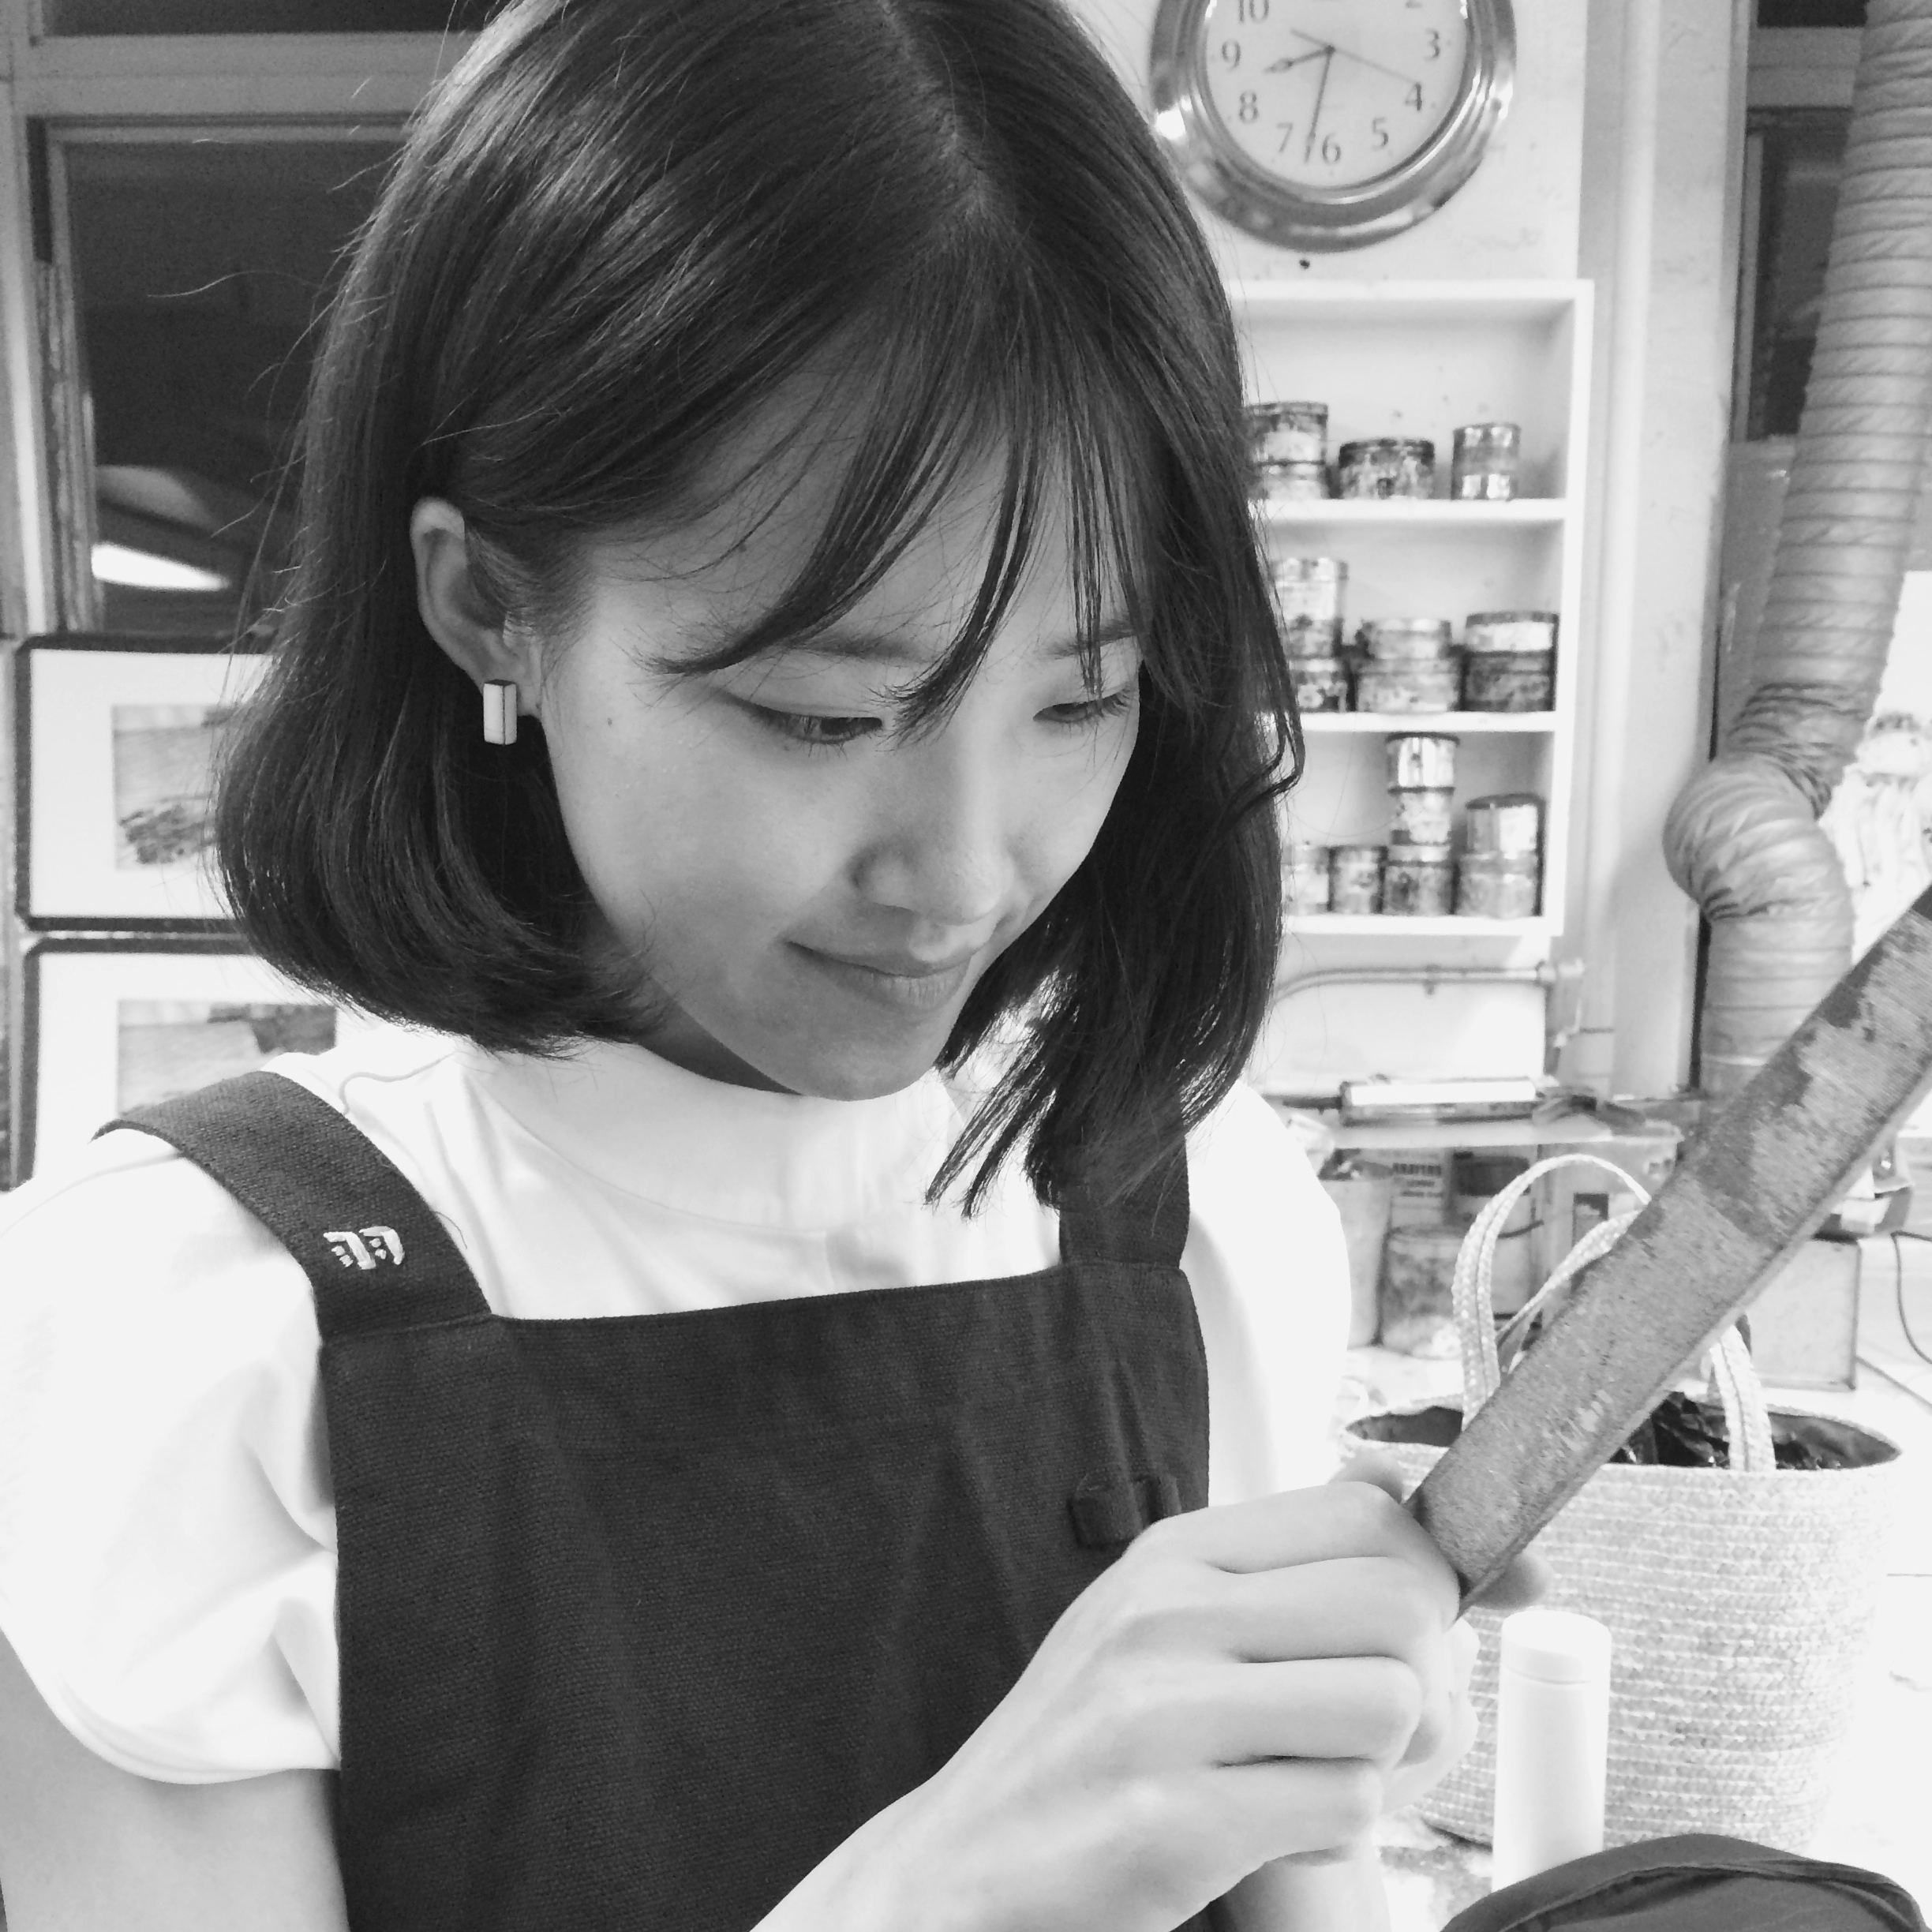 Yuchen Chang,   monitor since May 2015   Yuchen graduated School of the Art Institute of Chicago (MFA) in 2013. Her work is collected by Museum of Modern Art Library, New York and Joan Flasch Artists' Book Collection, Chicago. She can offer members assistance with her expertise in Etching.